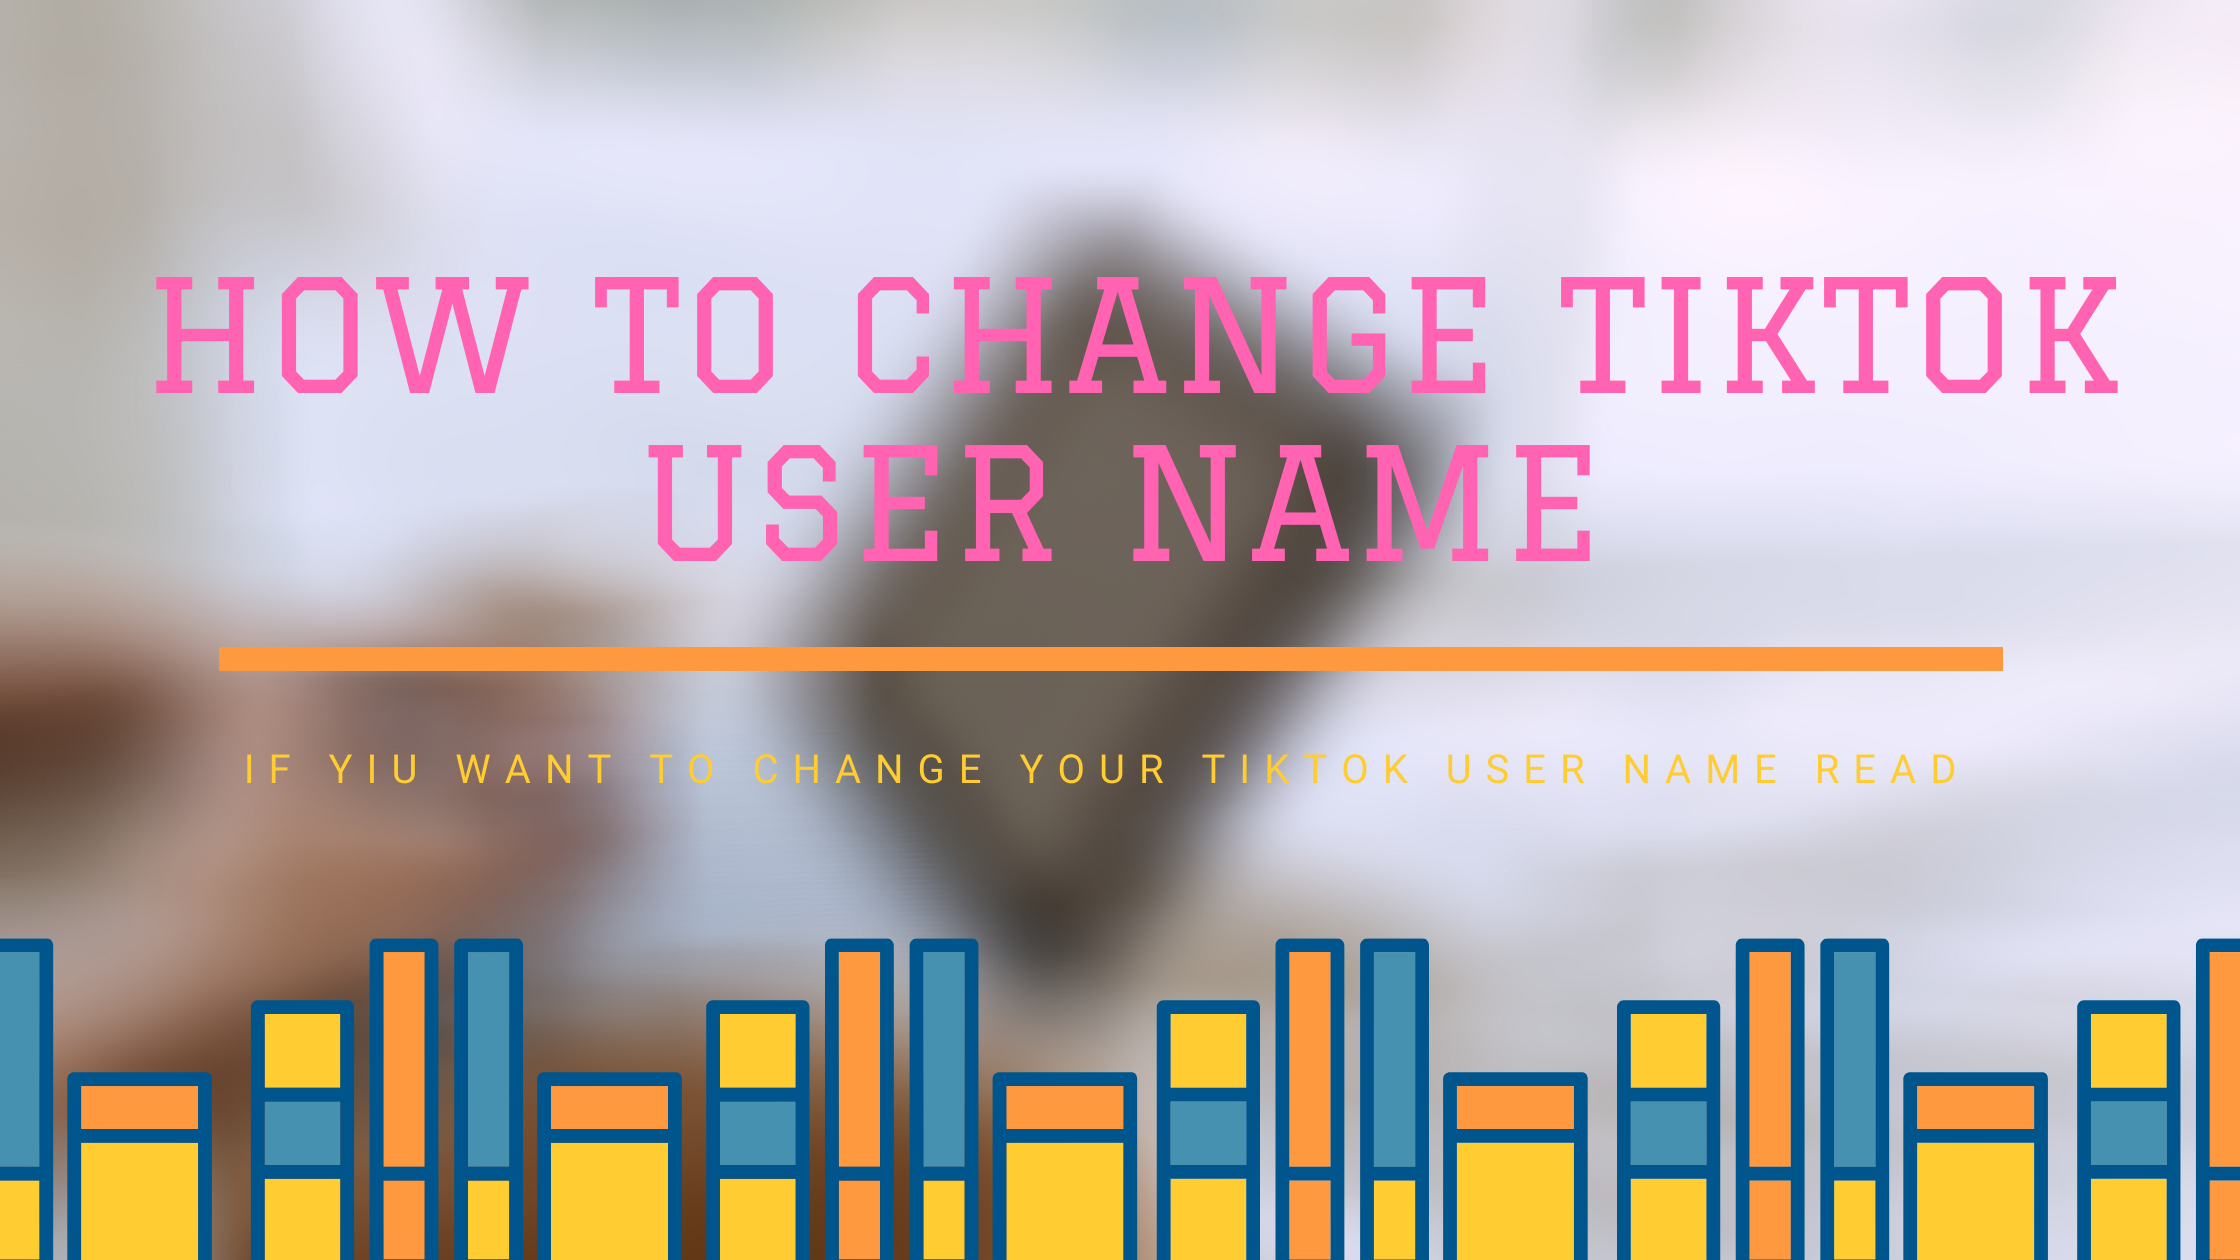 How to change tiktok user name